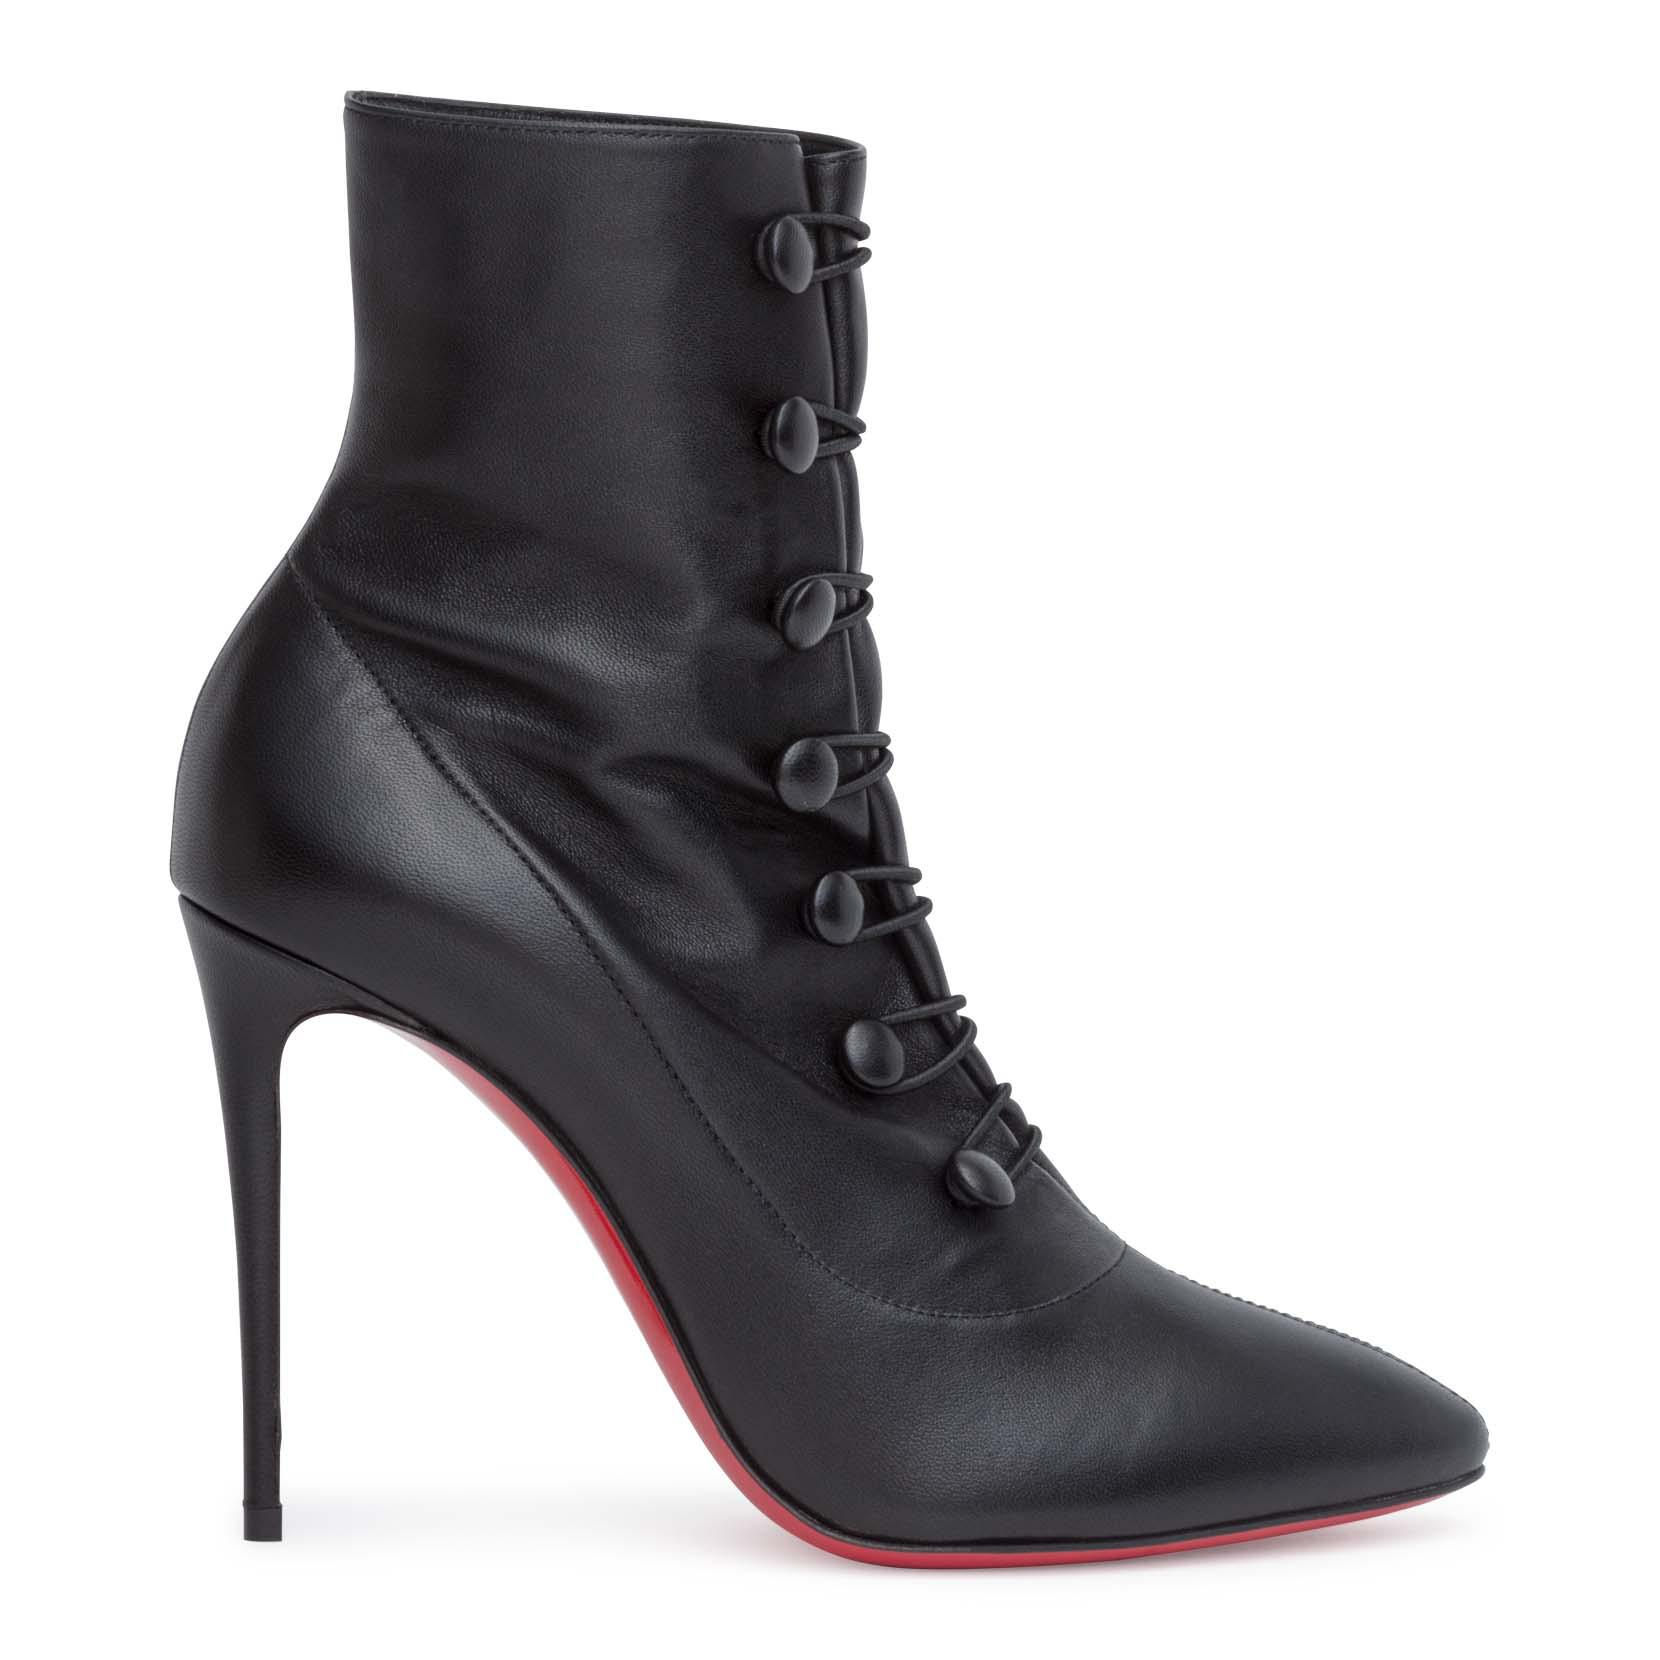 87d026824664 ... promo code for christian louboutin french tutu 100 black booties lyst.  view fullscreen 45a8c a9f70